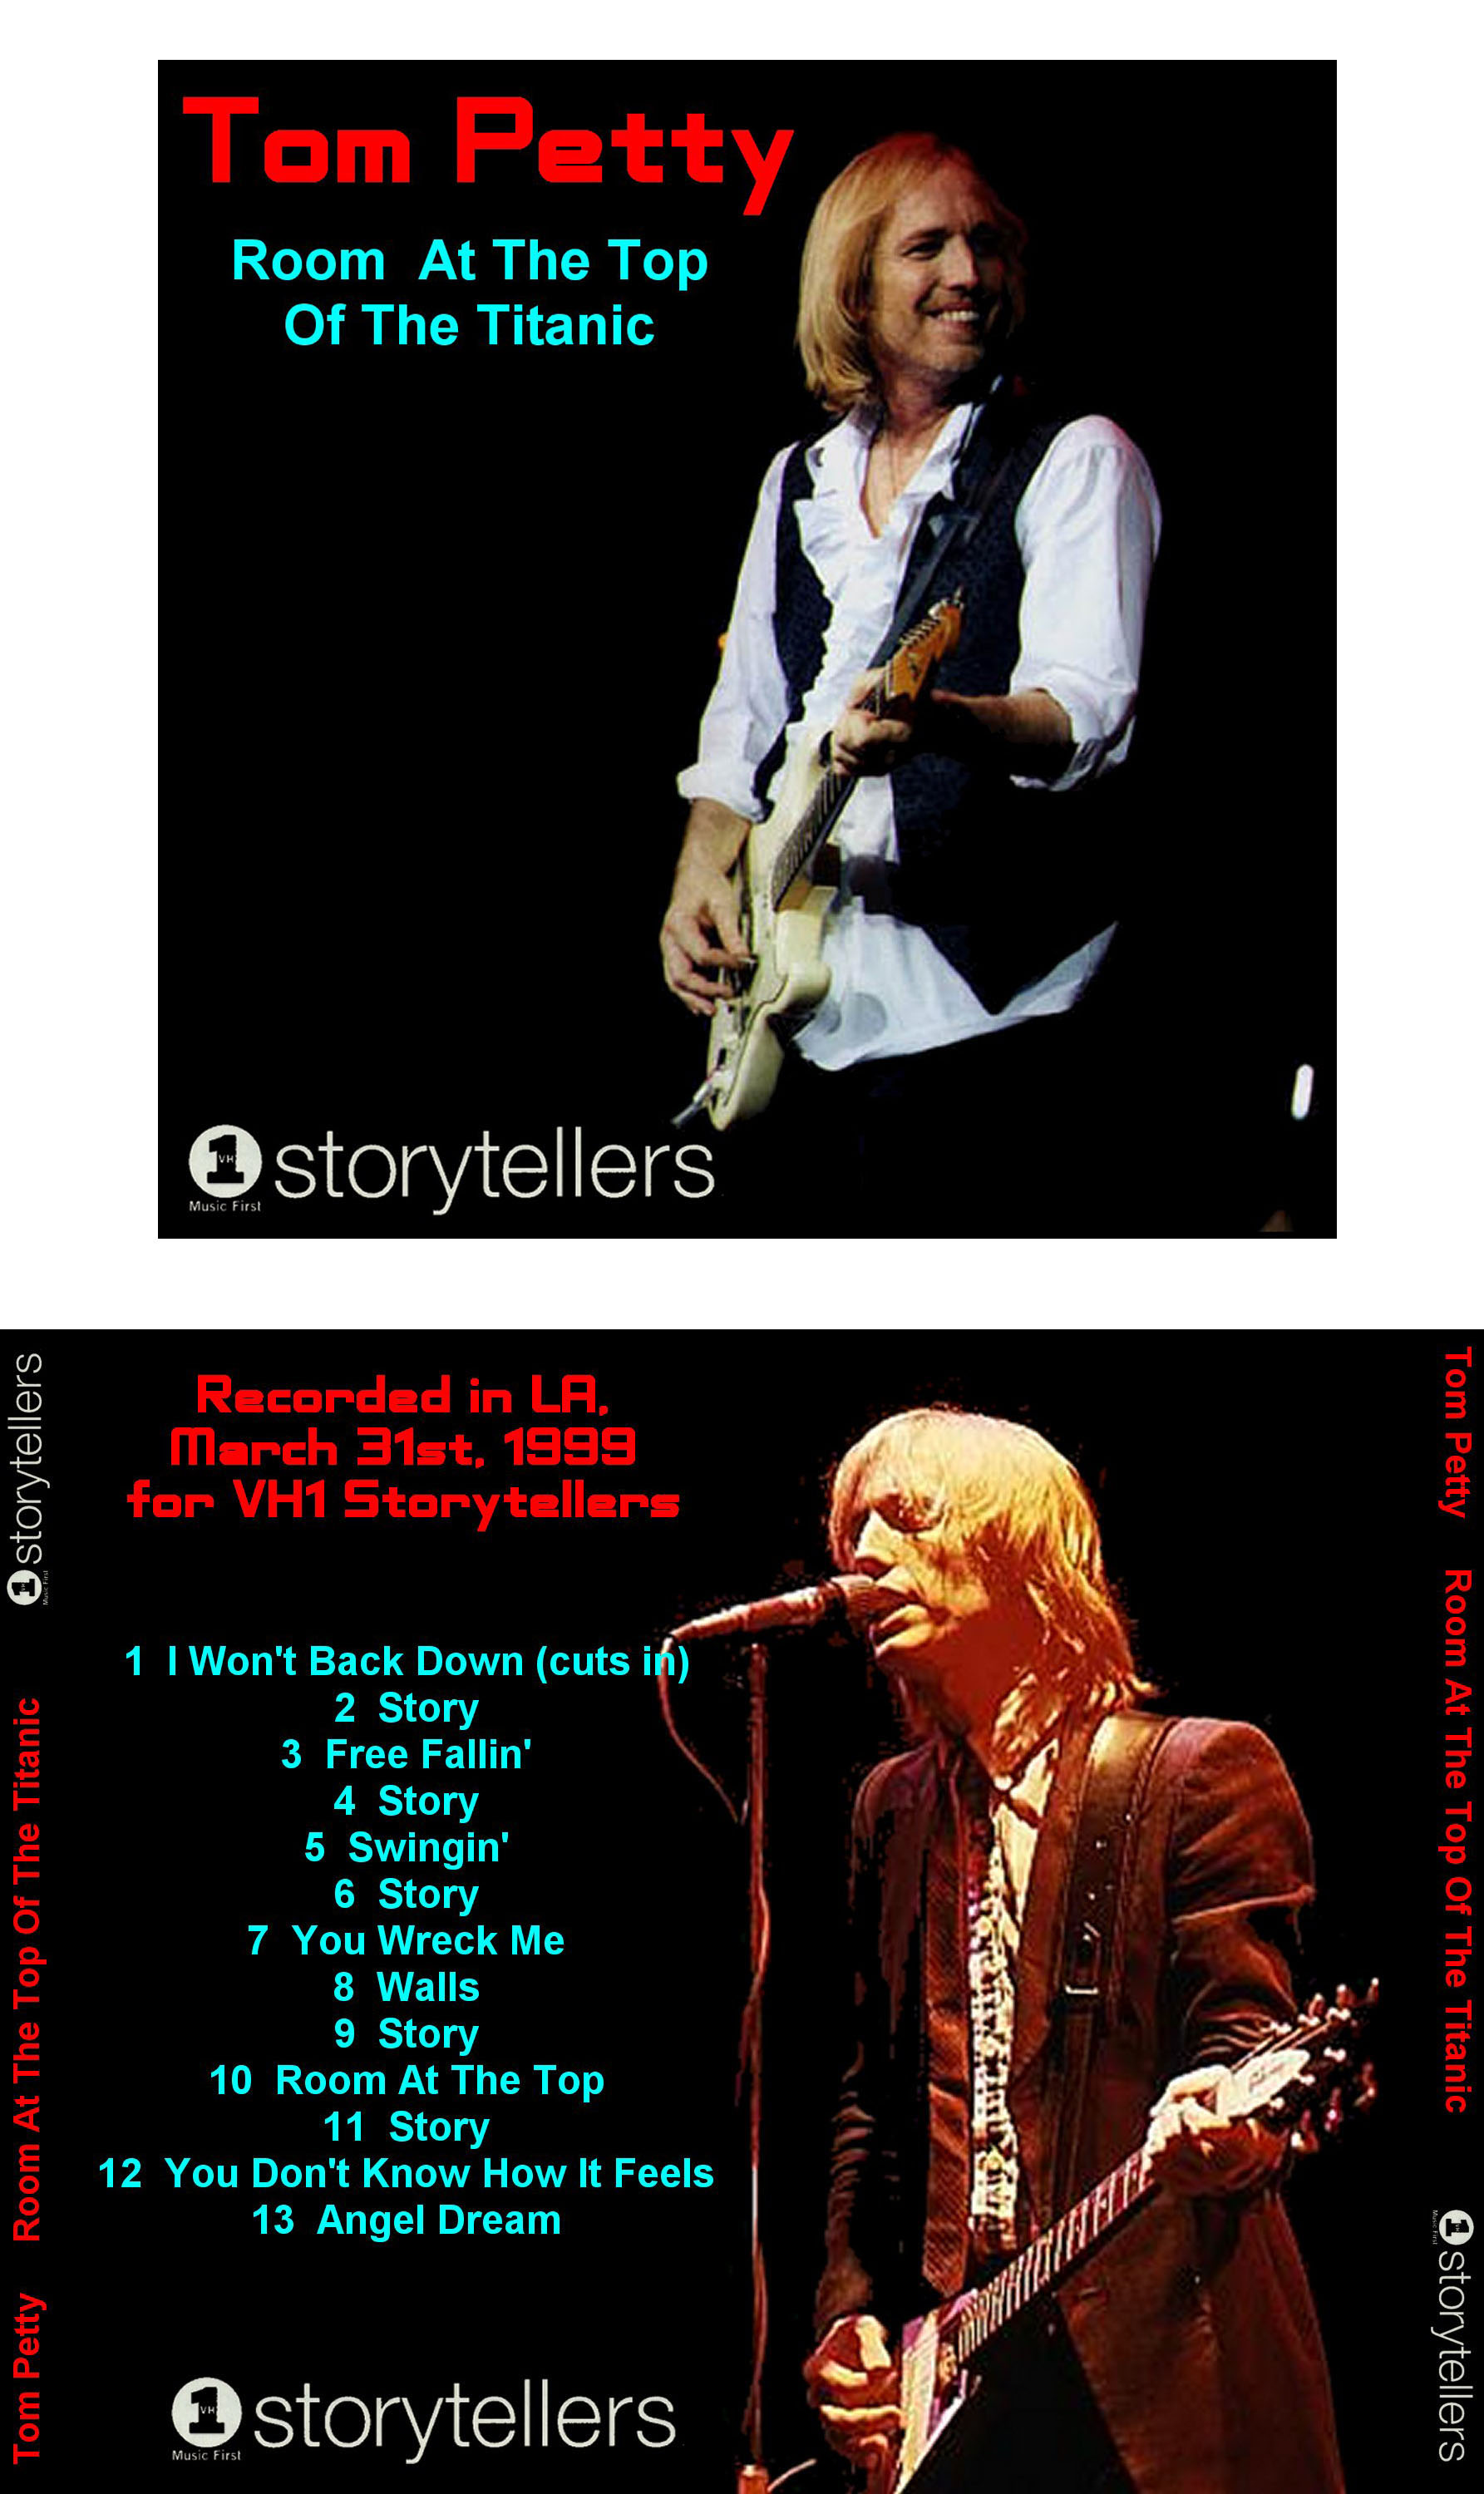 Maniac Paul S Bootlegs Tom Petty Room At The Top Of